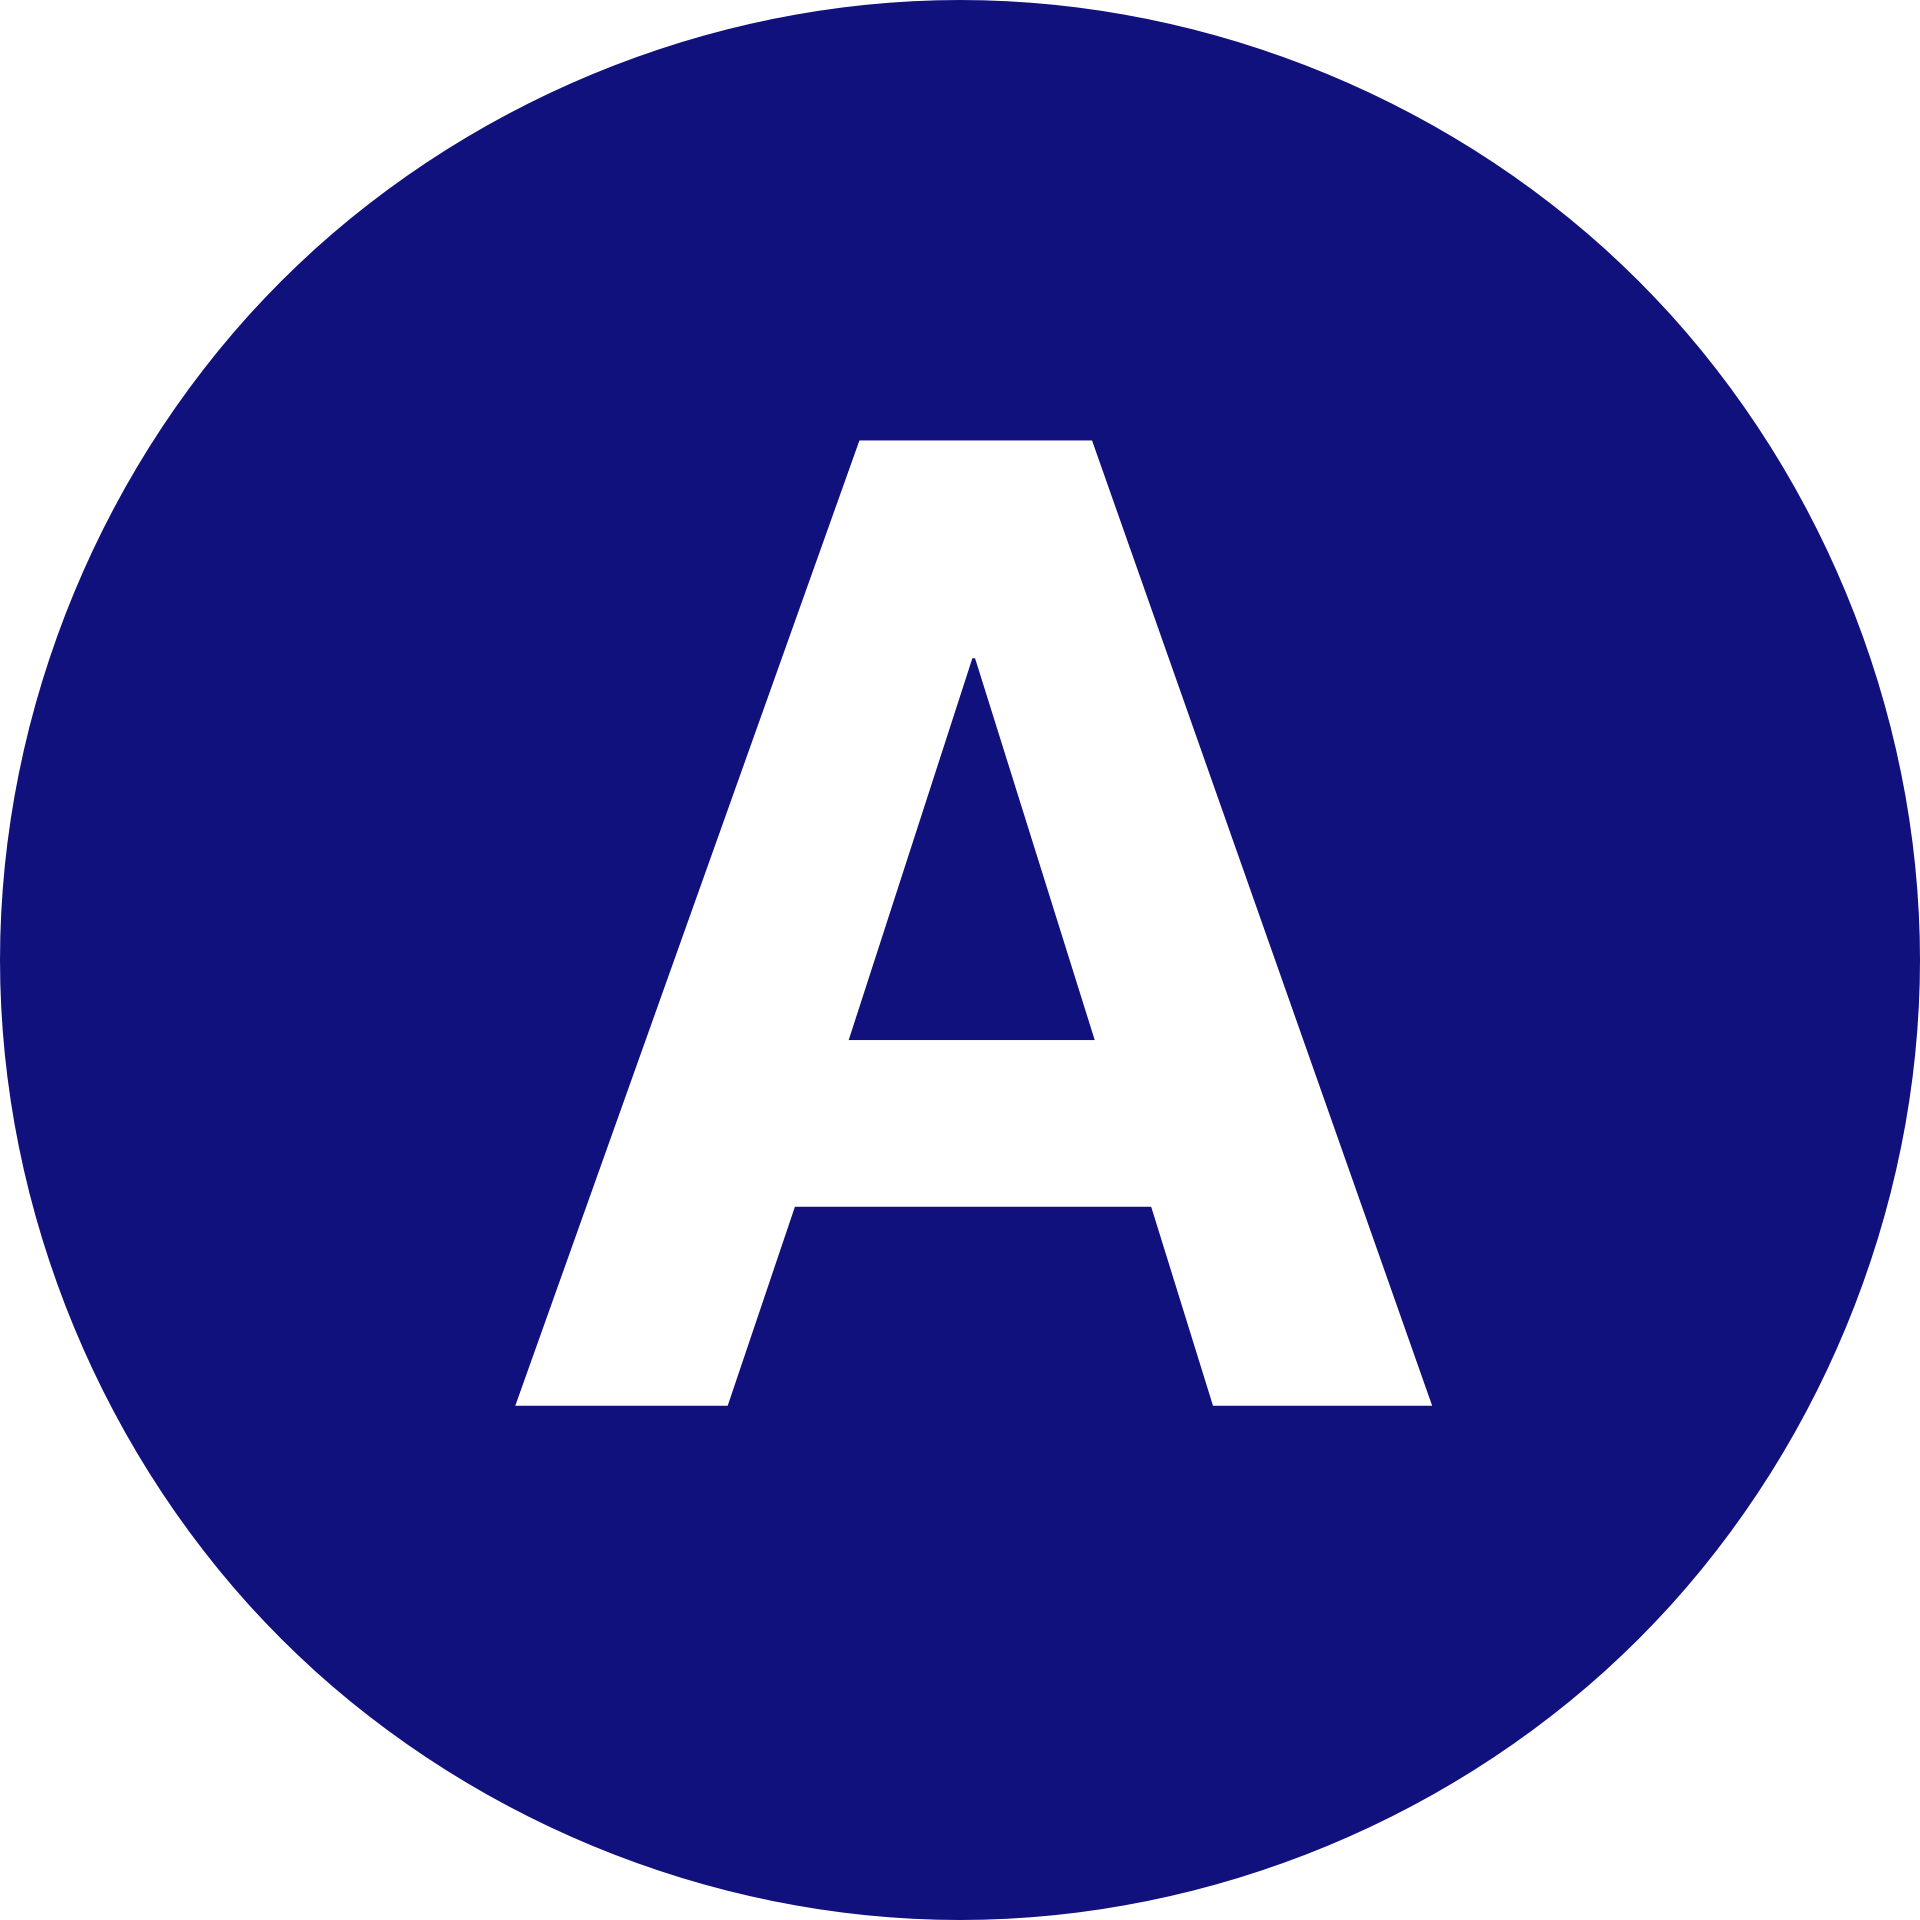 Blue Circle With The Letter A Inside Free Image